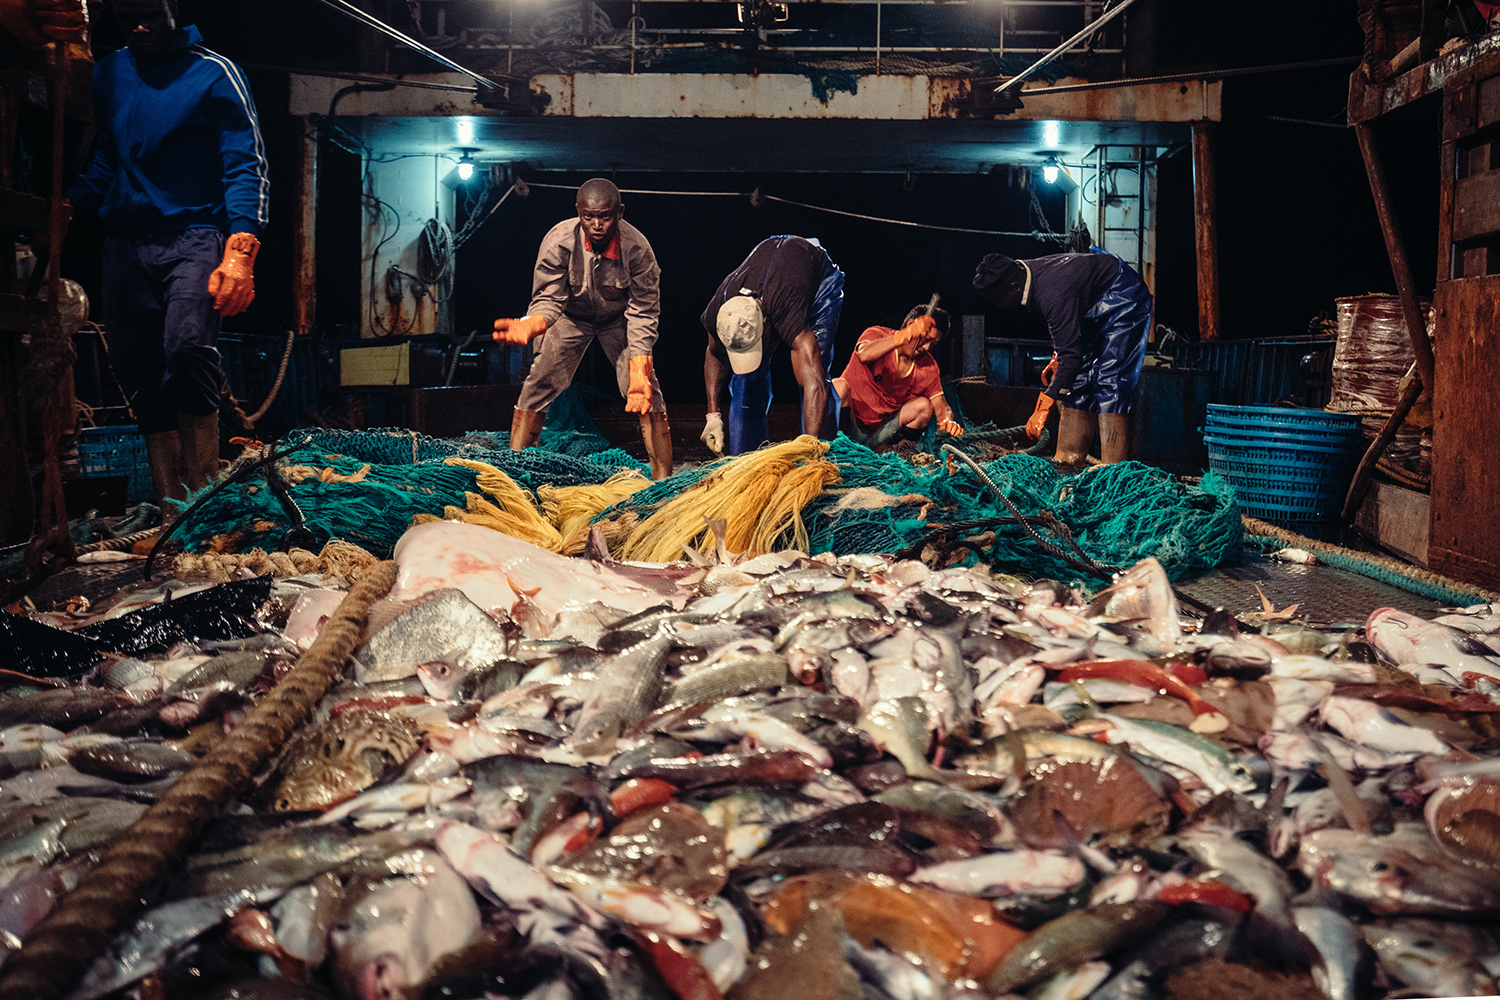 Crew members clean and sort the catch after the nets have been retrieved on Captain Xu's ship, July 22, 2016. This process happens every two or three hours, 24 hours a day. According to Xu, on a good day his crew can net up to 10,000 kg of fish, but on a bad day there might only be 4,000-5,000 kg. This trip's catch has been on the lower end.